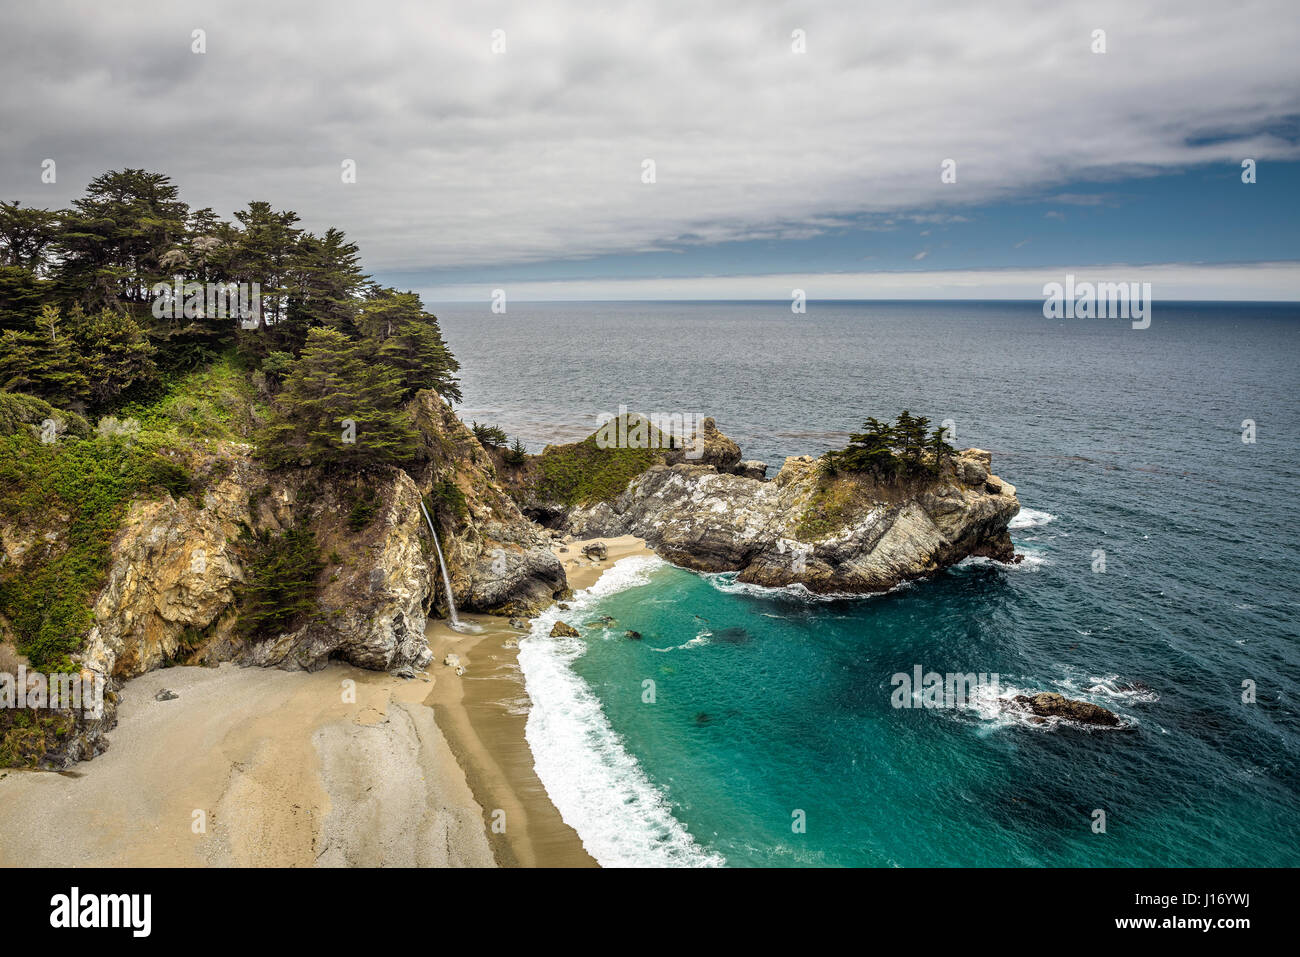 McWay Falls on Pacific Coast Highway, Big Sur state park, California. - Stock Image